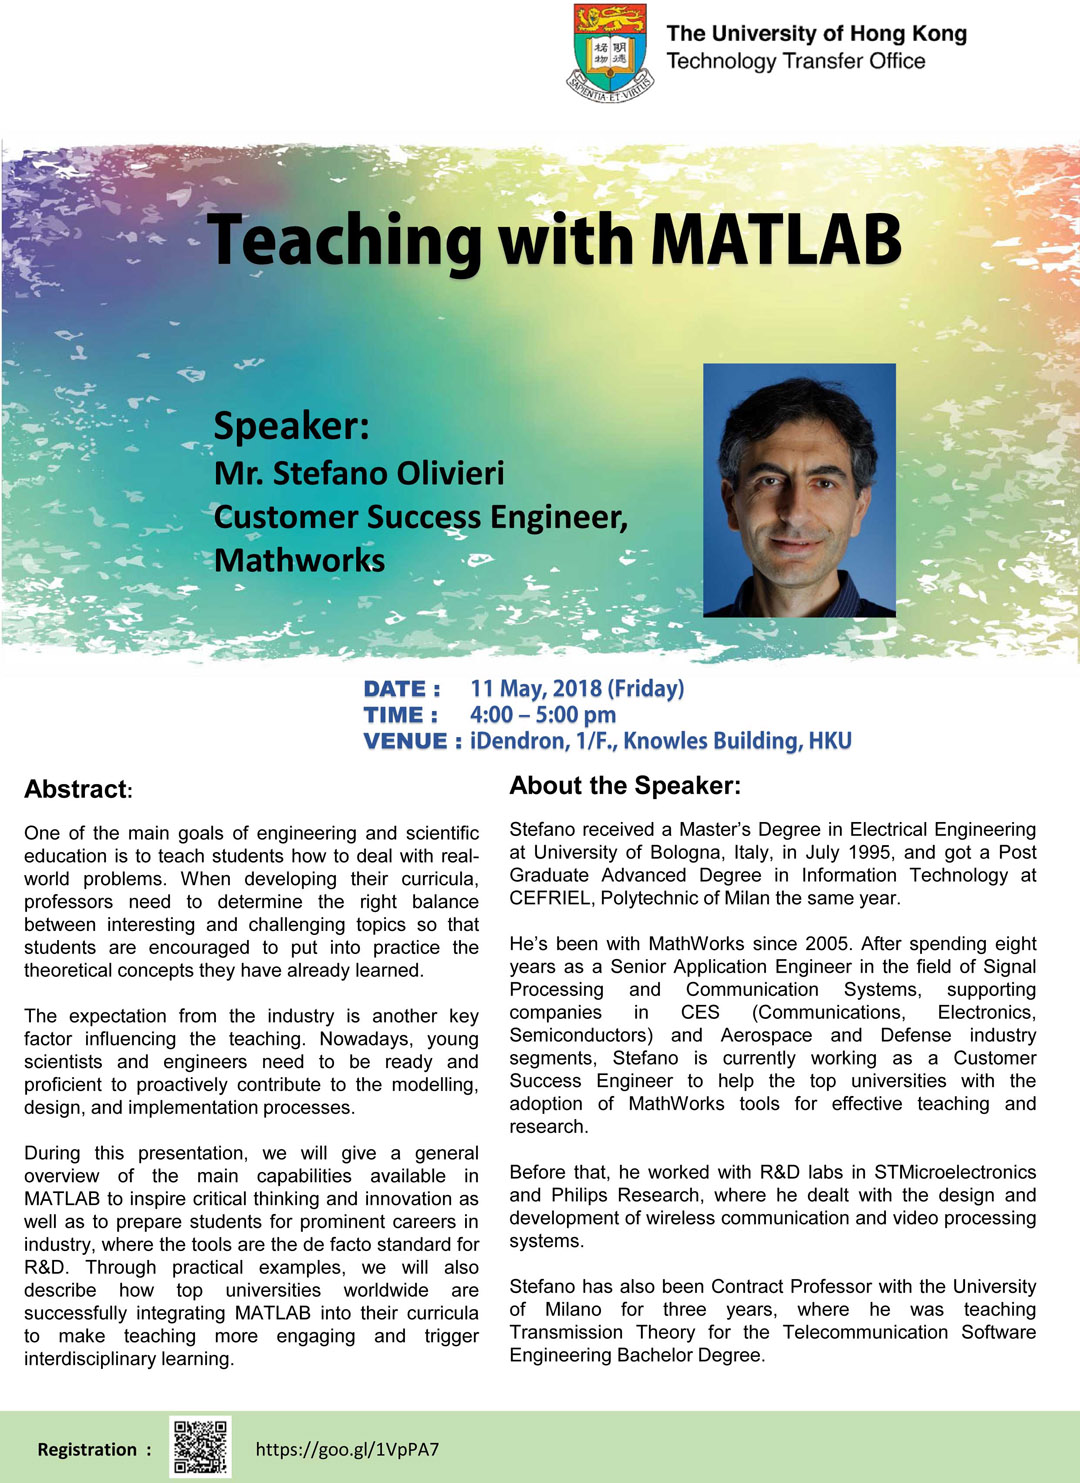 Teaching with MATLAB by Mr  Stefano Olivieri | iDendron